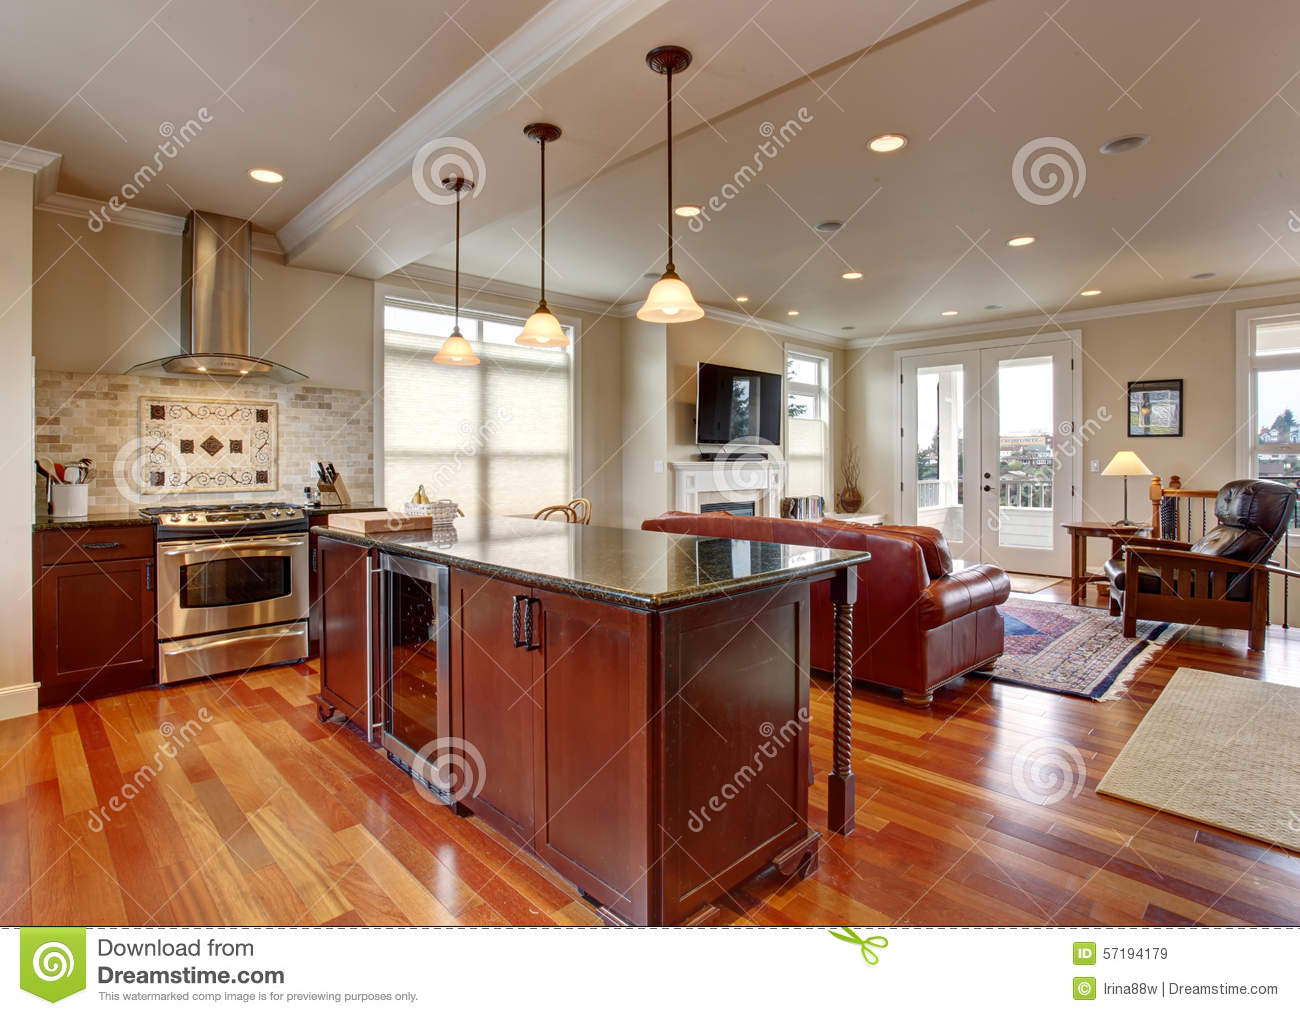 State Of The Art Kitchen With Deep Stained Cabinets, And Stainless Steel  Fridge.